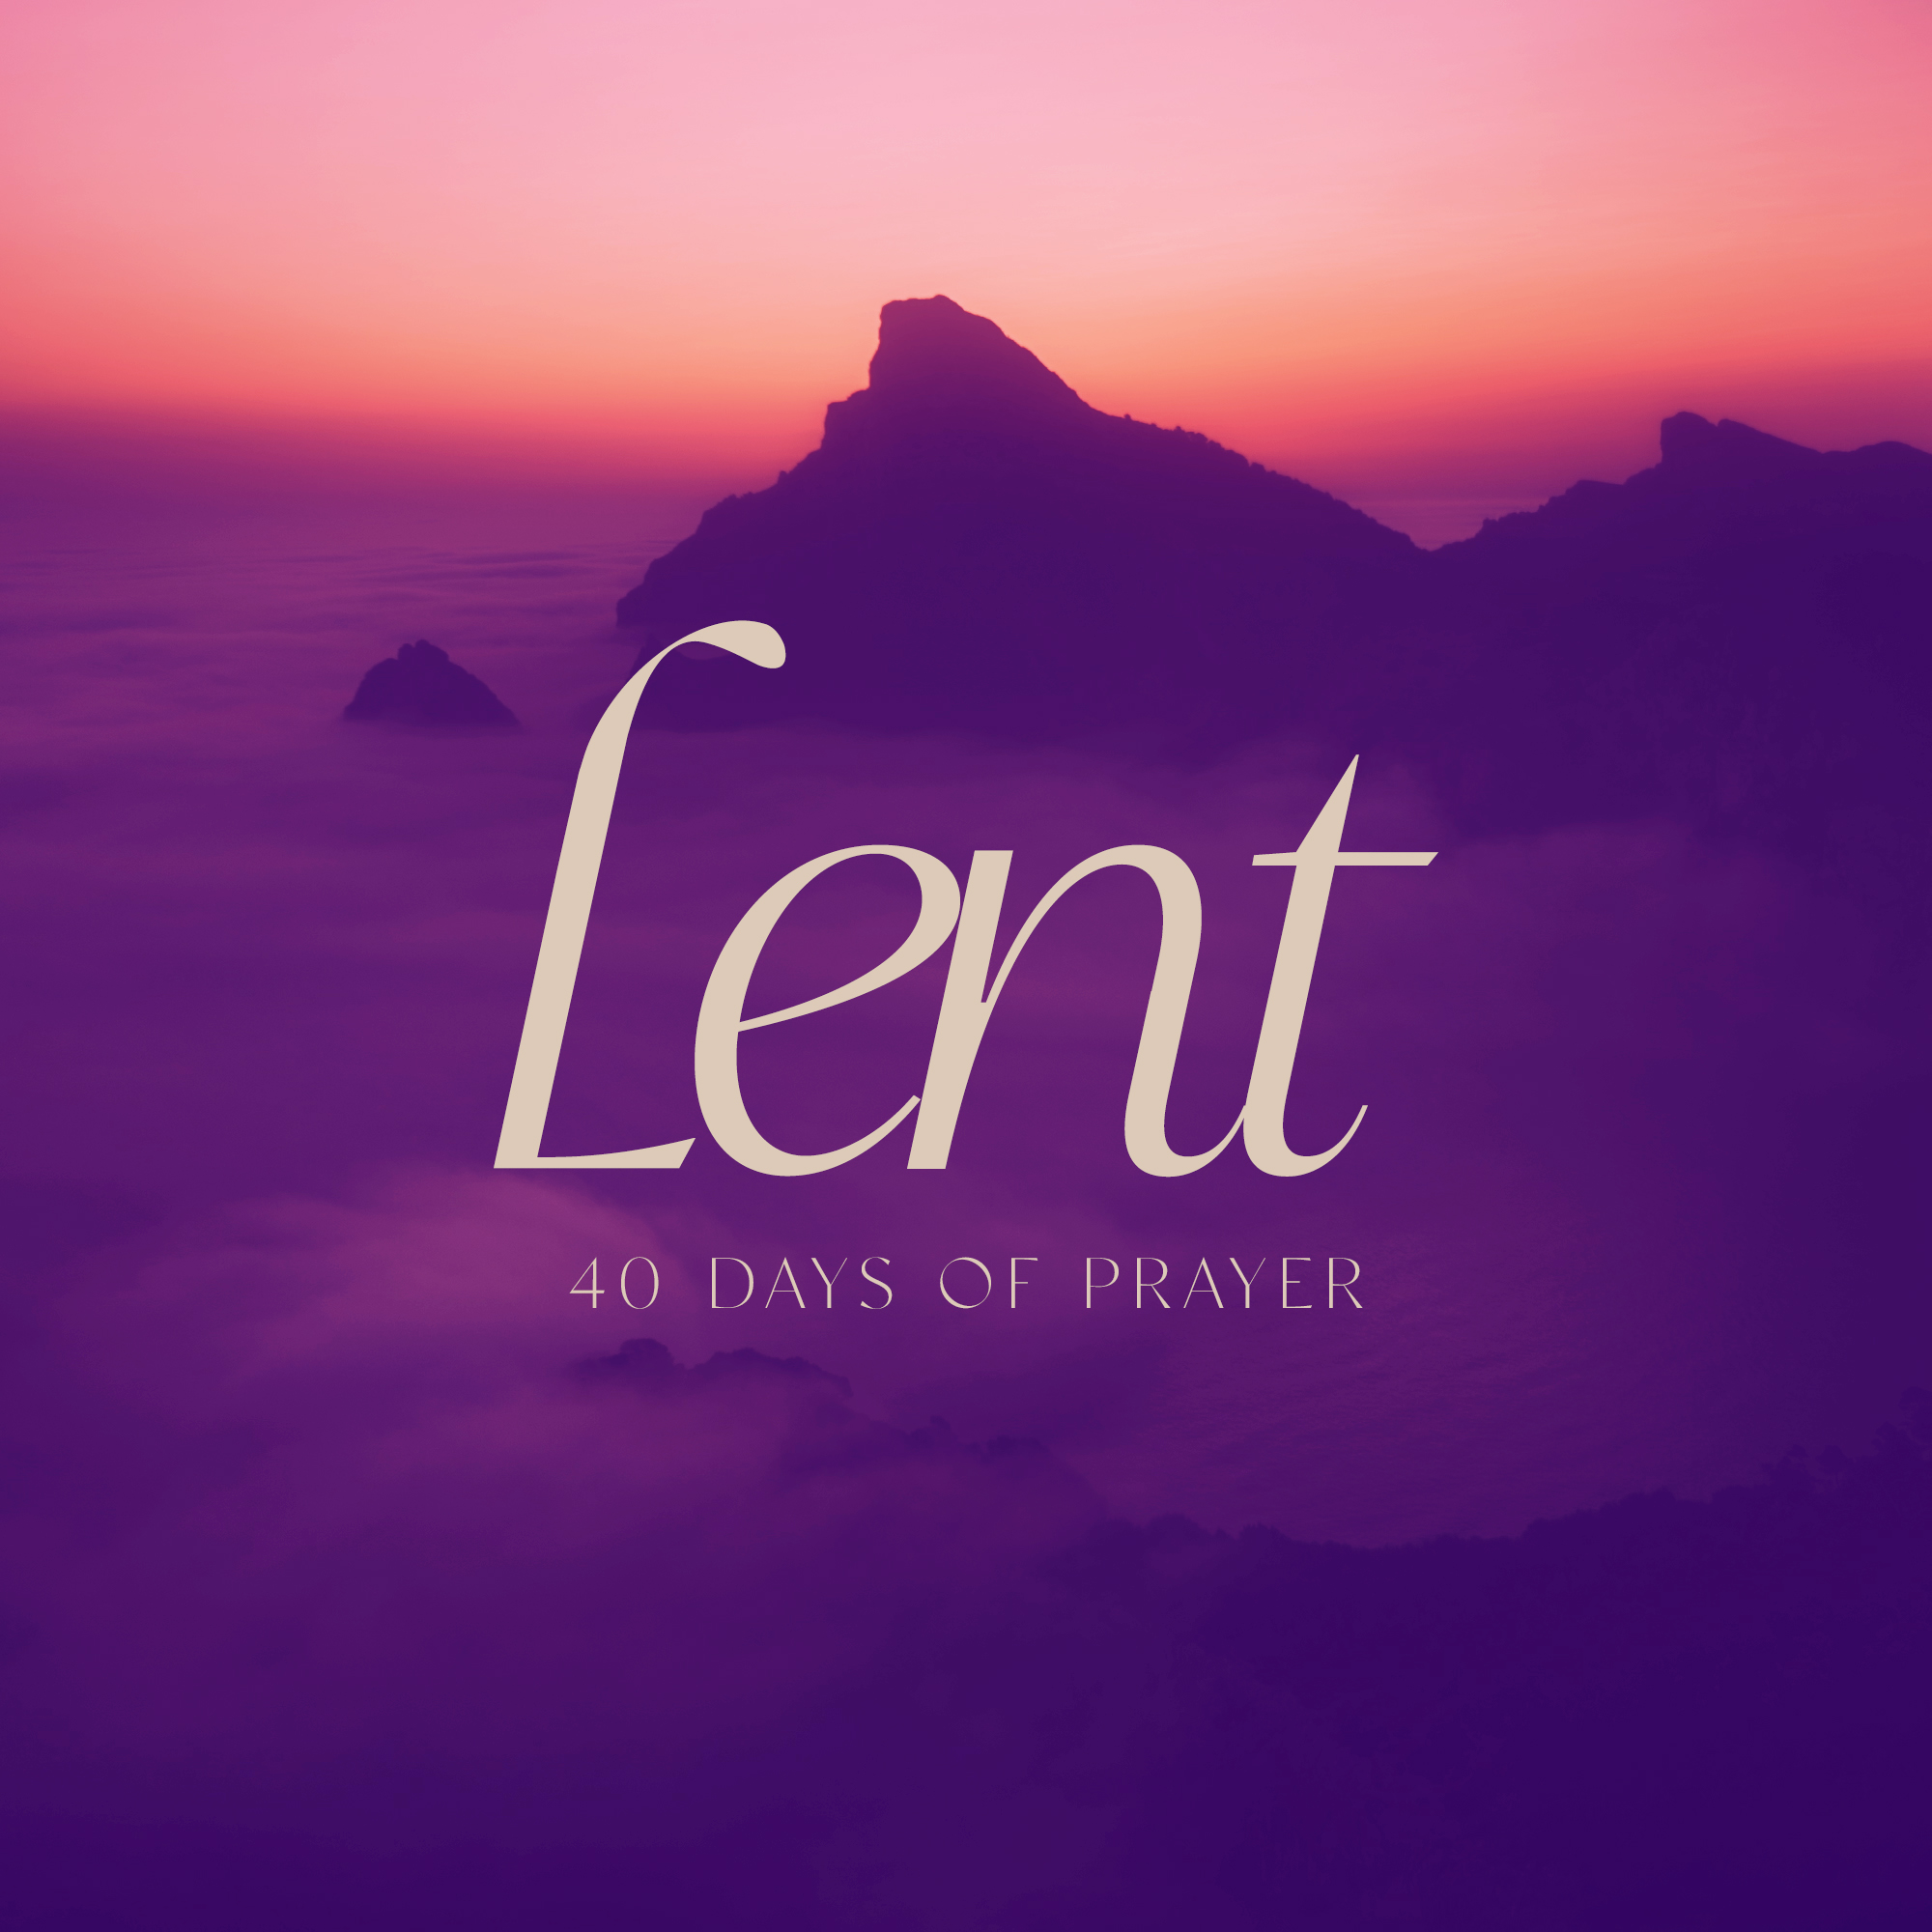 Daily Lenten Devotions